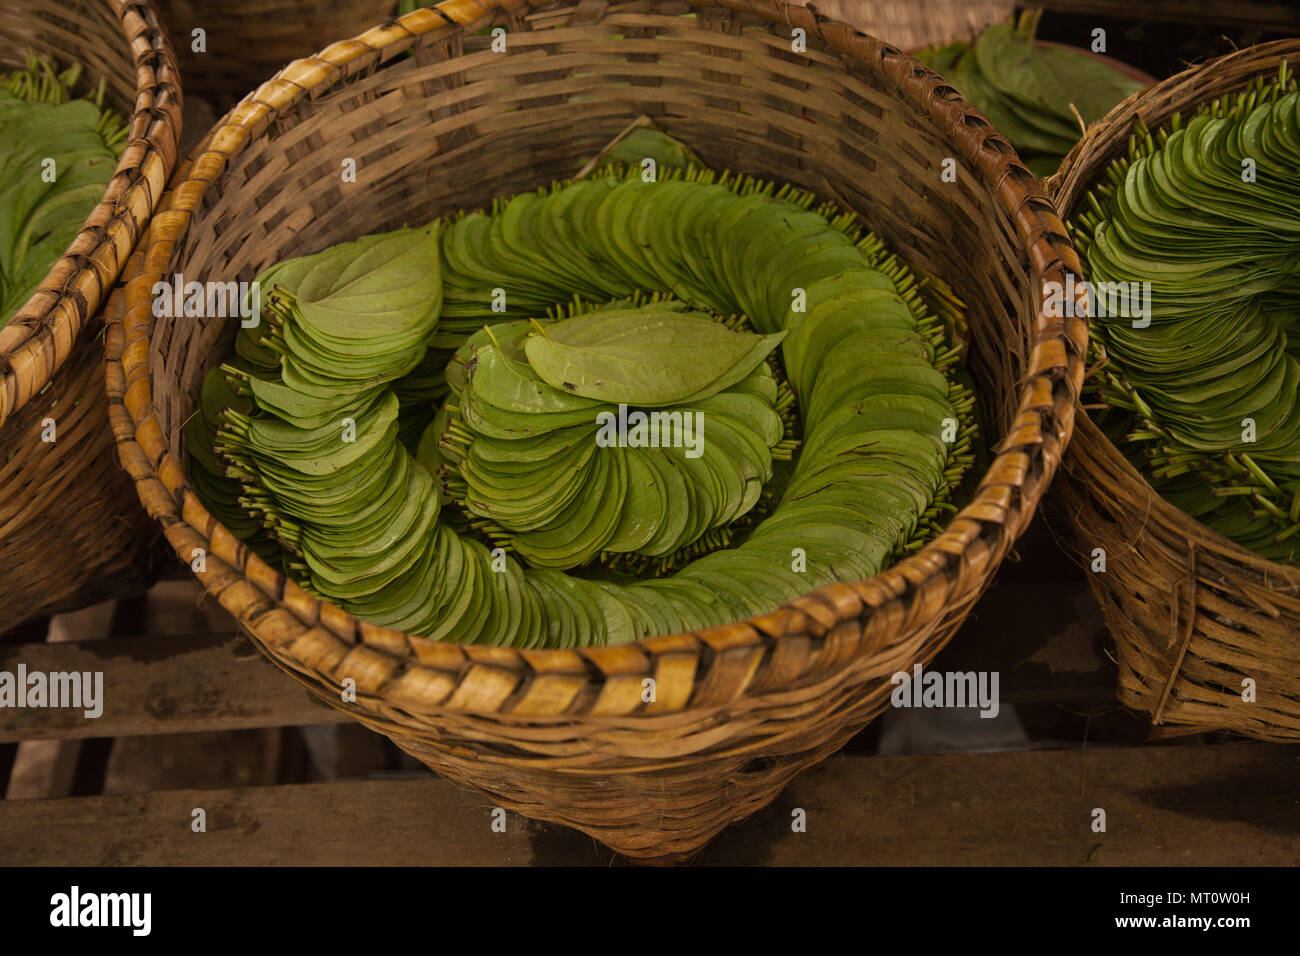 Betel nut leaves, sometimes called the scourge of Asia neatly stacked in a market in Yangon, Burma. - Stock Image